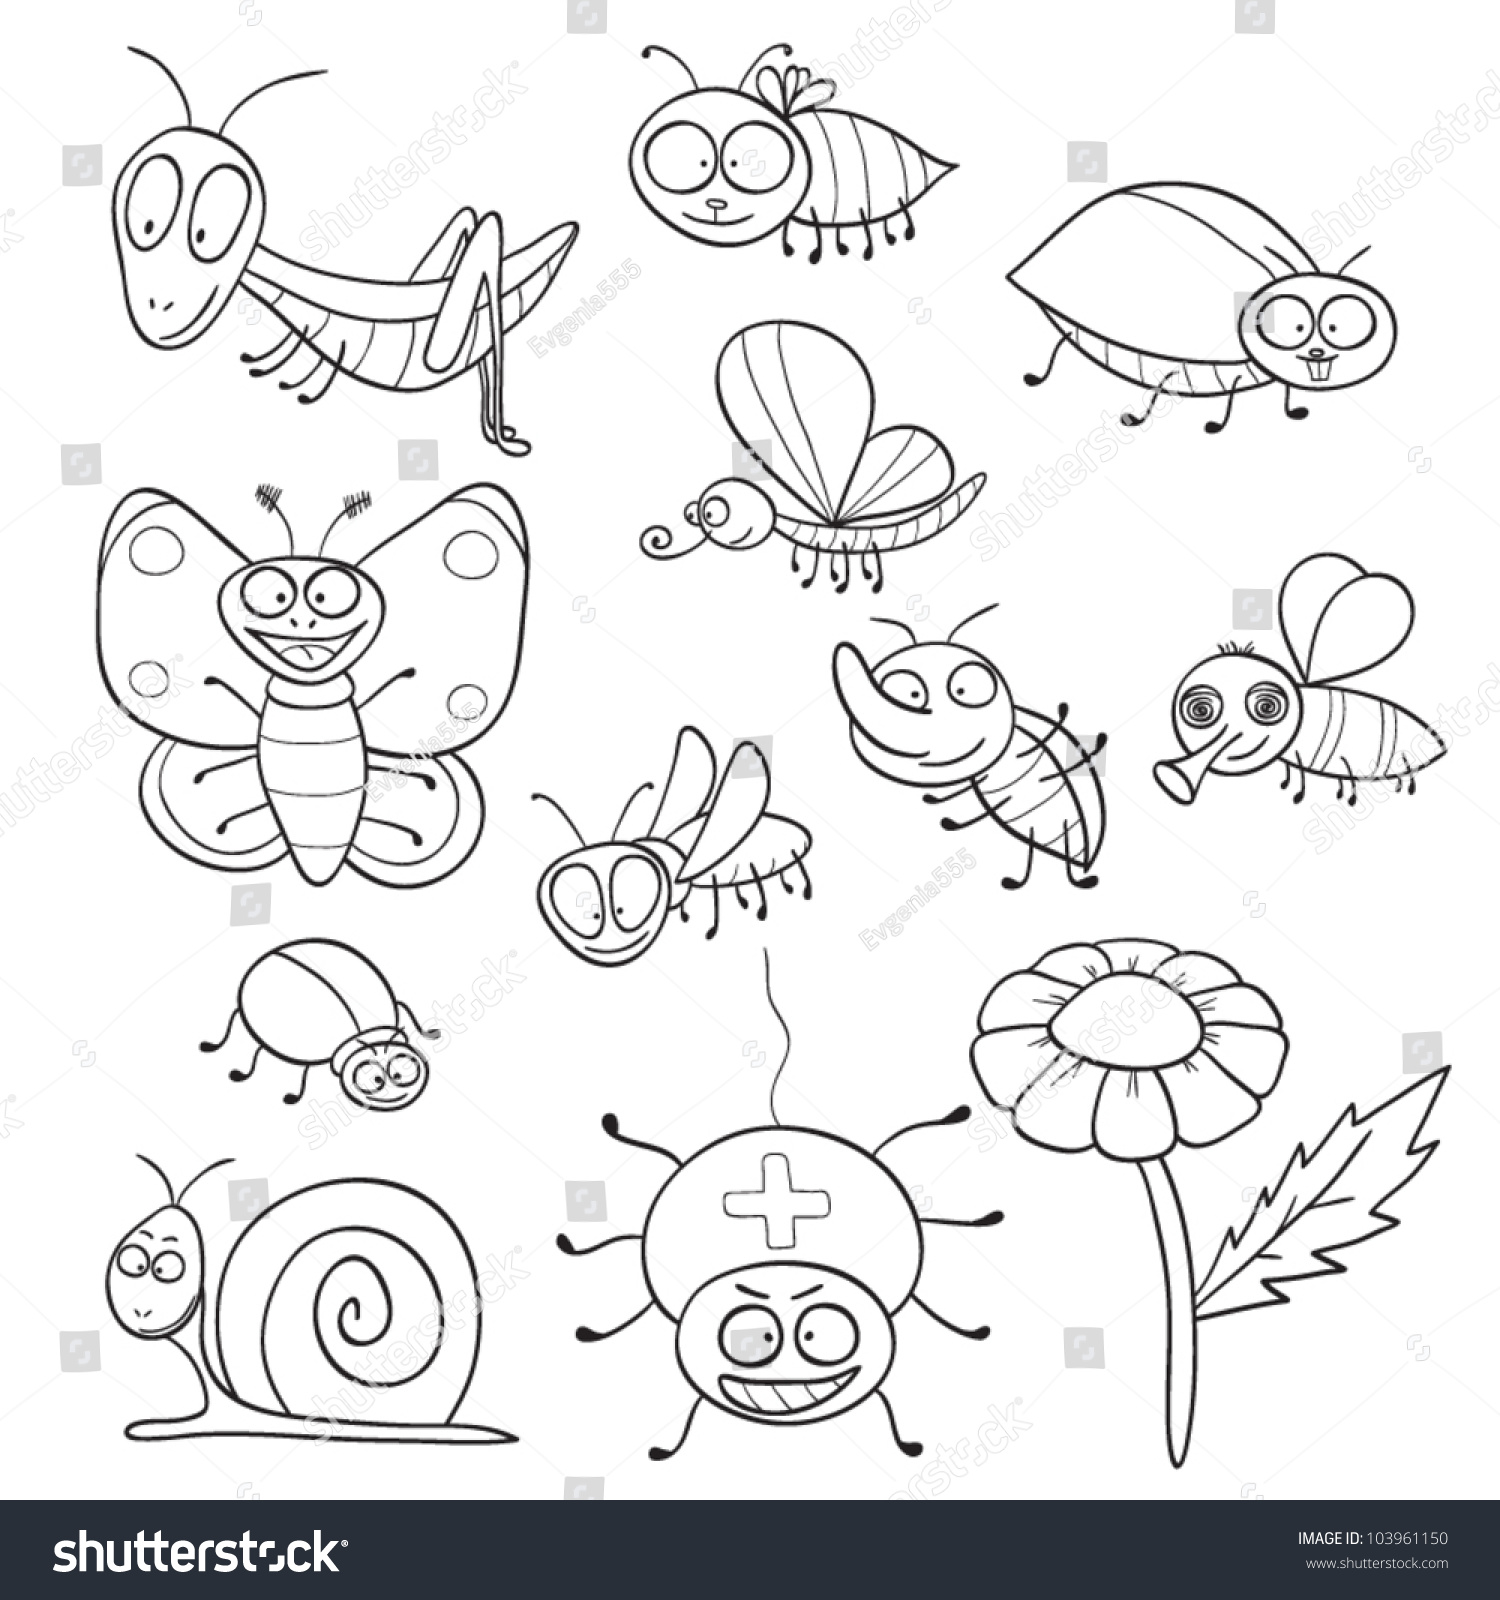 Outlined Cute Cartoon Insects Coloring Book Stock Vector